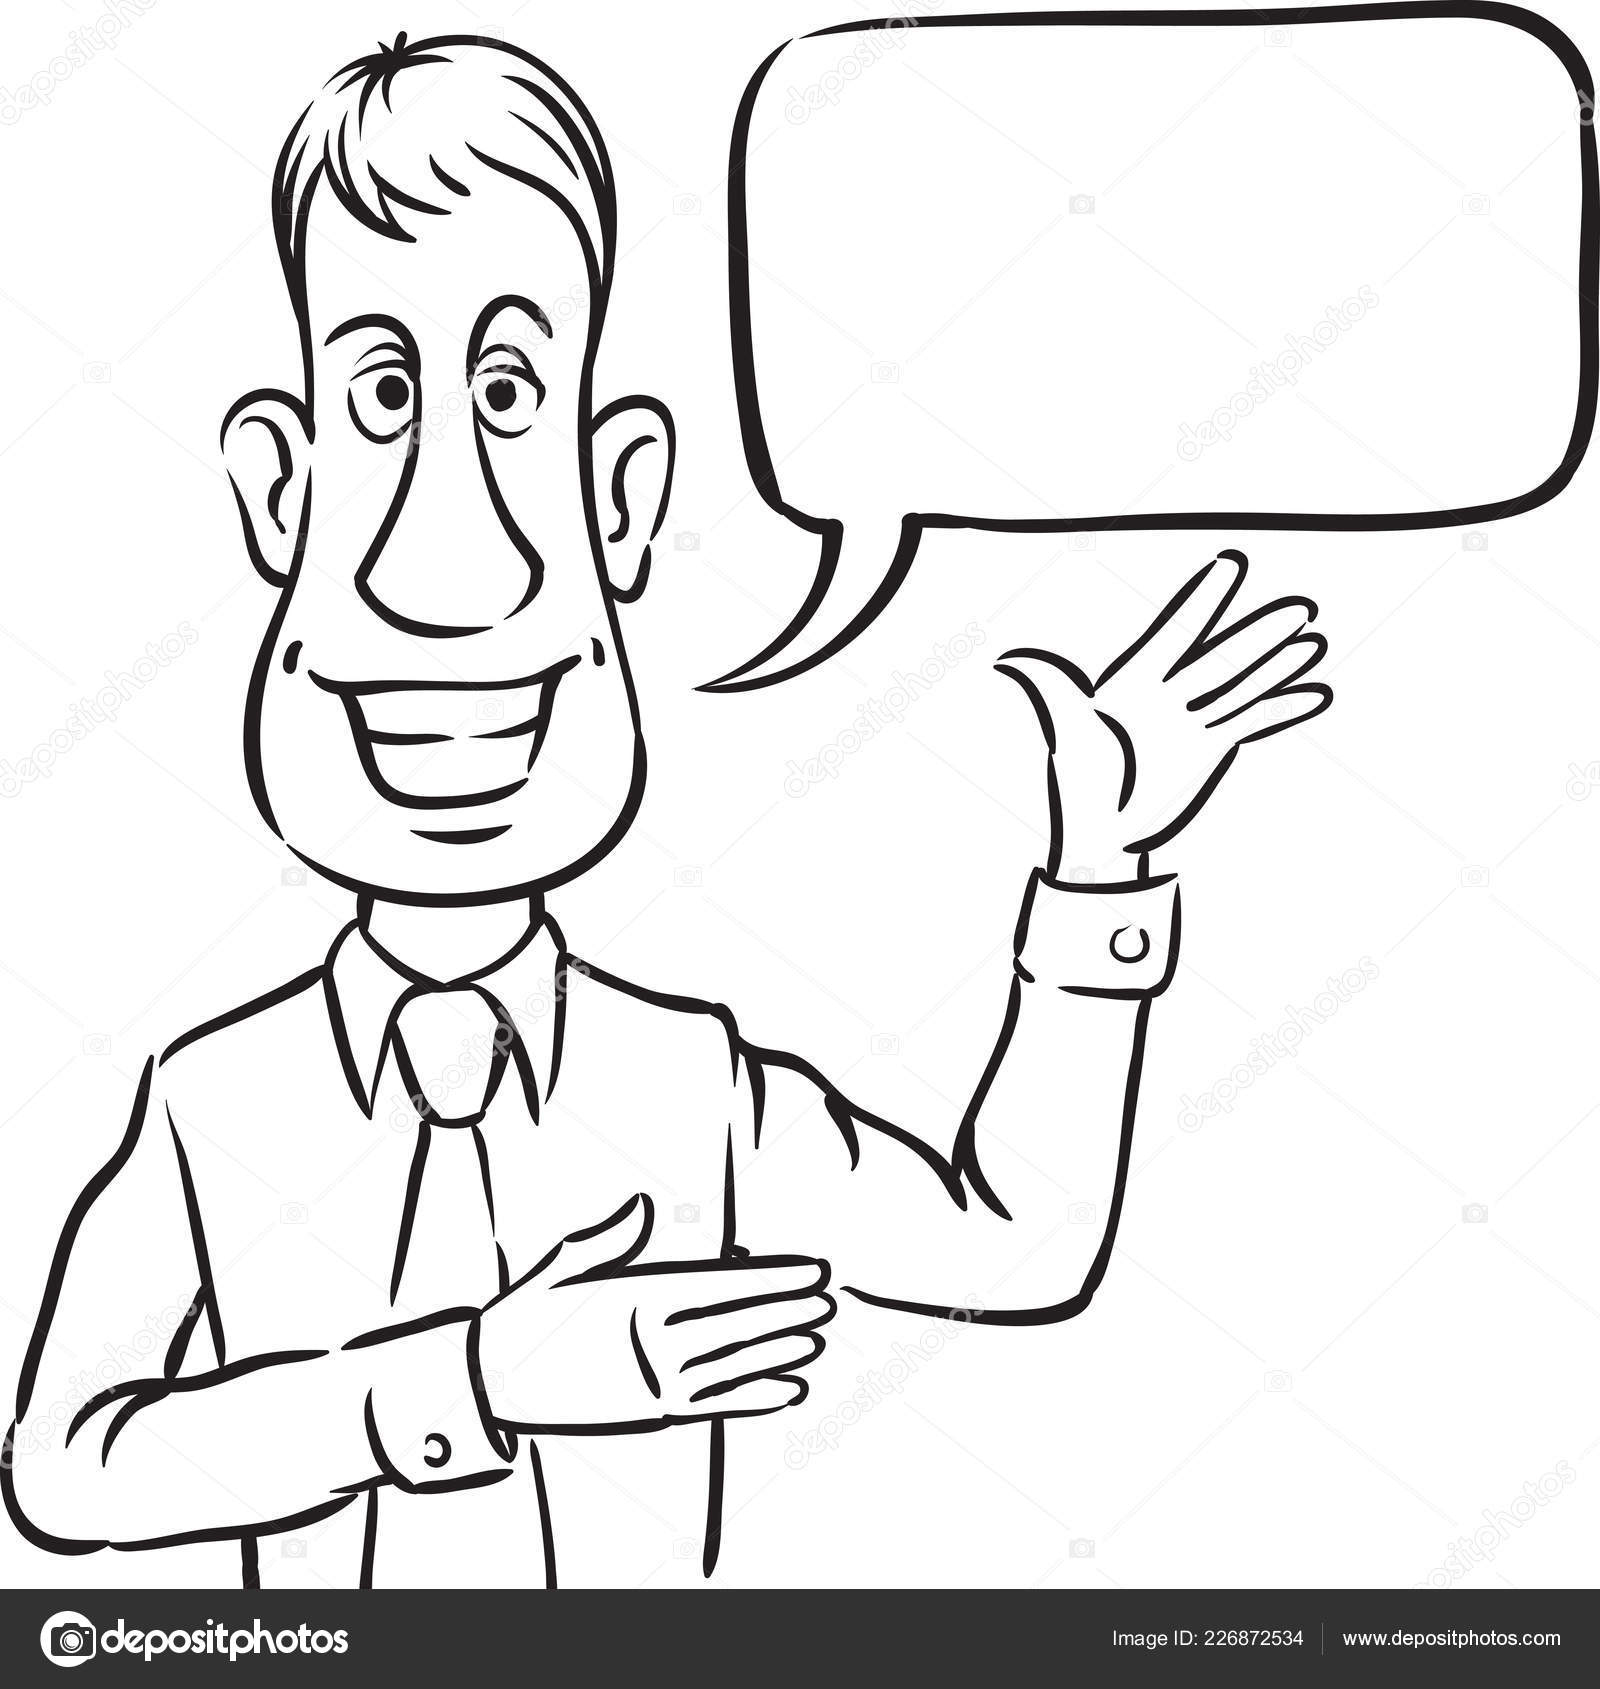 Whiteboard Drawing Businessman Speech Bubble Smiling Pointing Easy